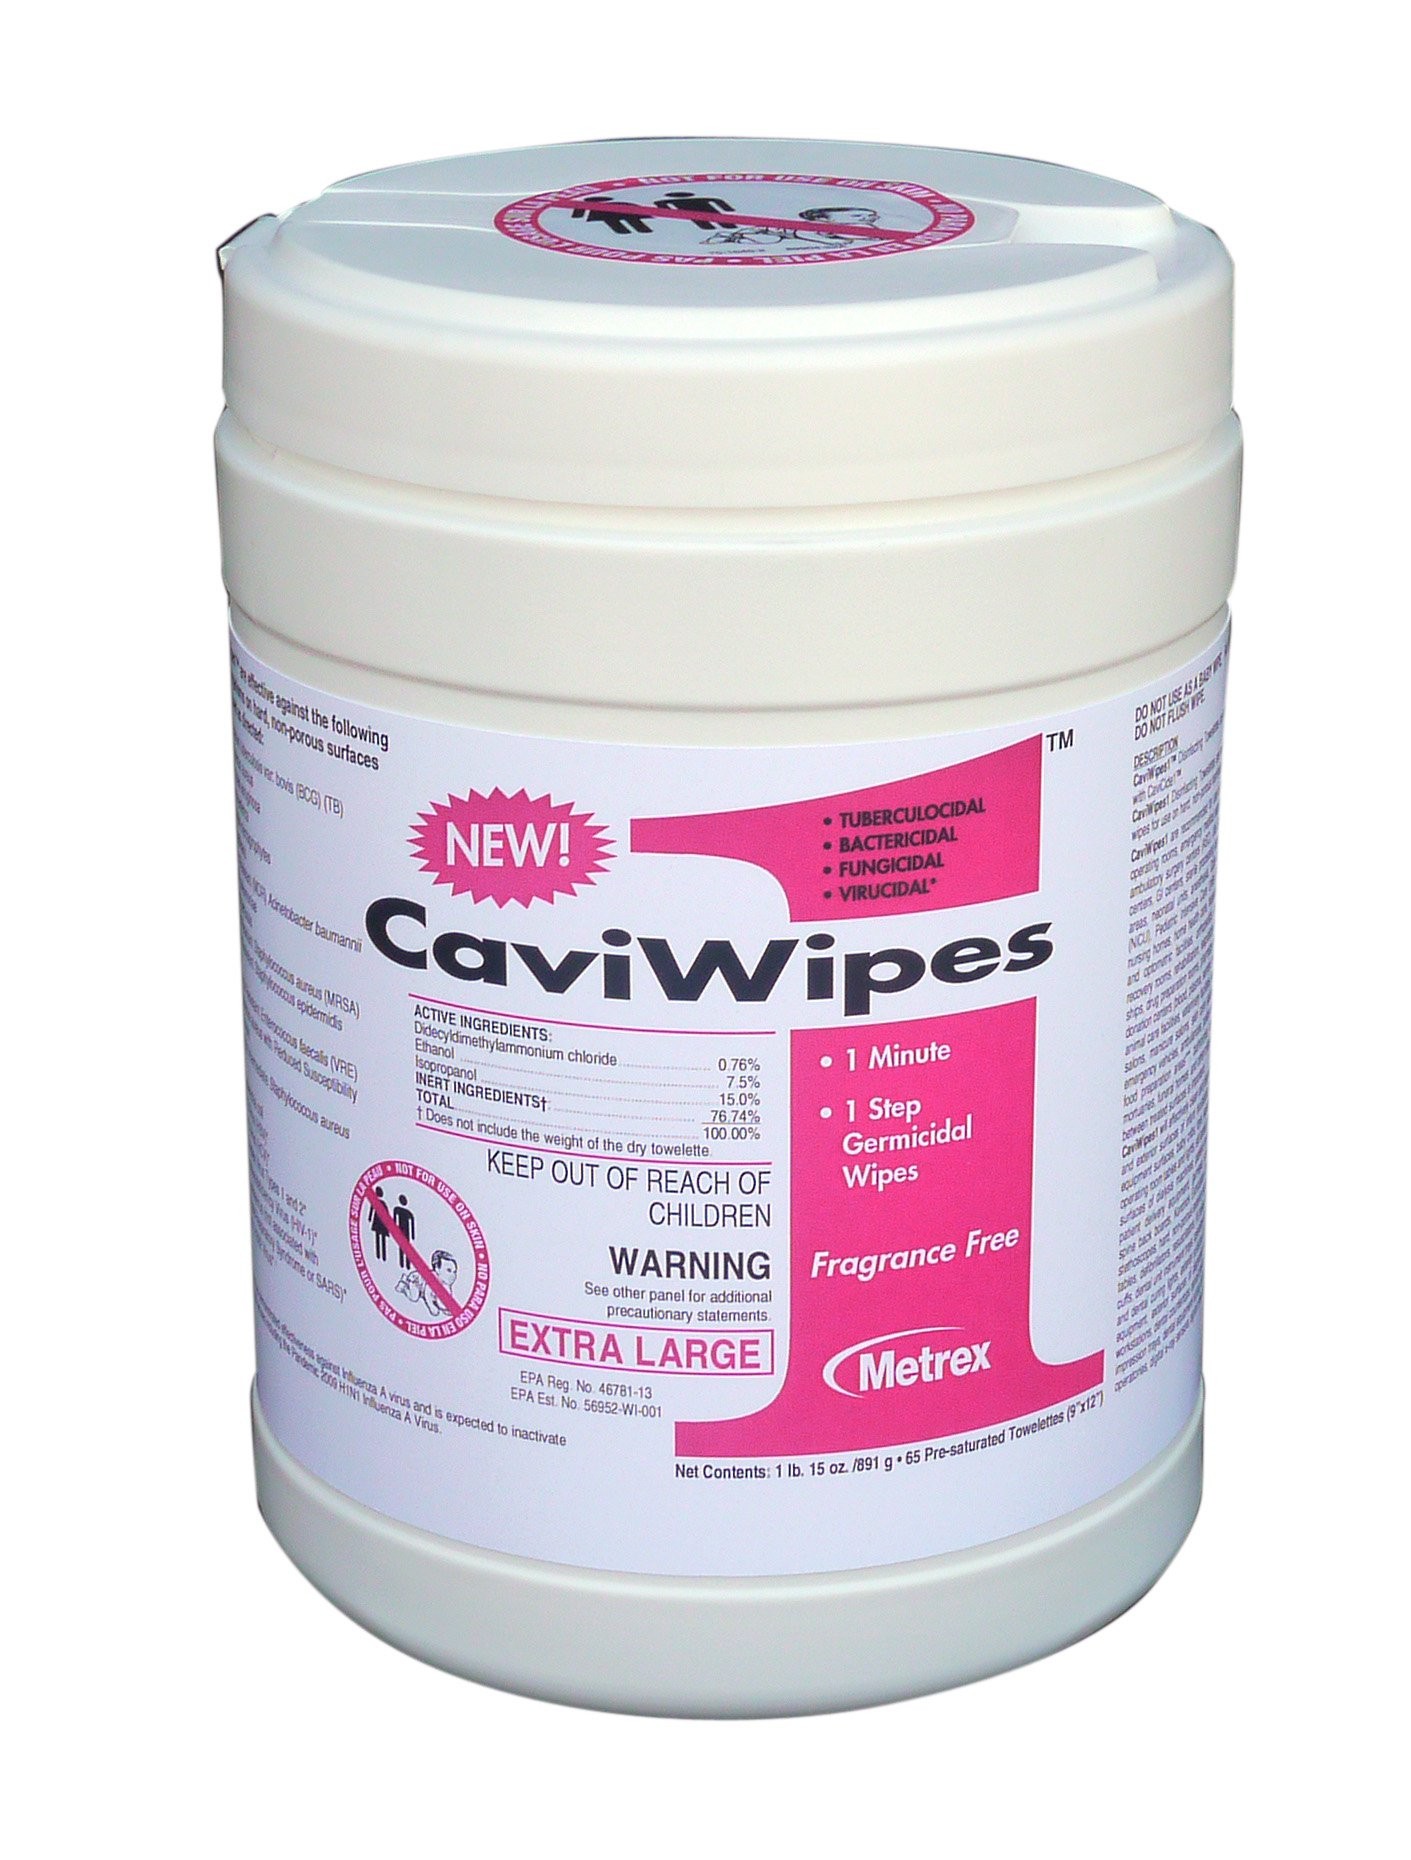 Image Of Surface Disinfectant CaviWipes1 Premoistened Wipe 65 Count Canister Disposable Alcohol Scent